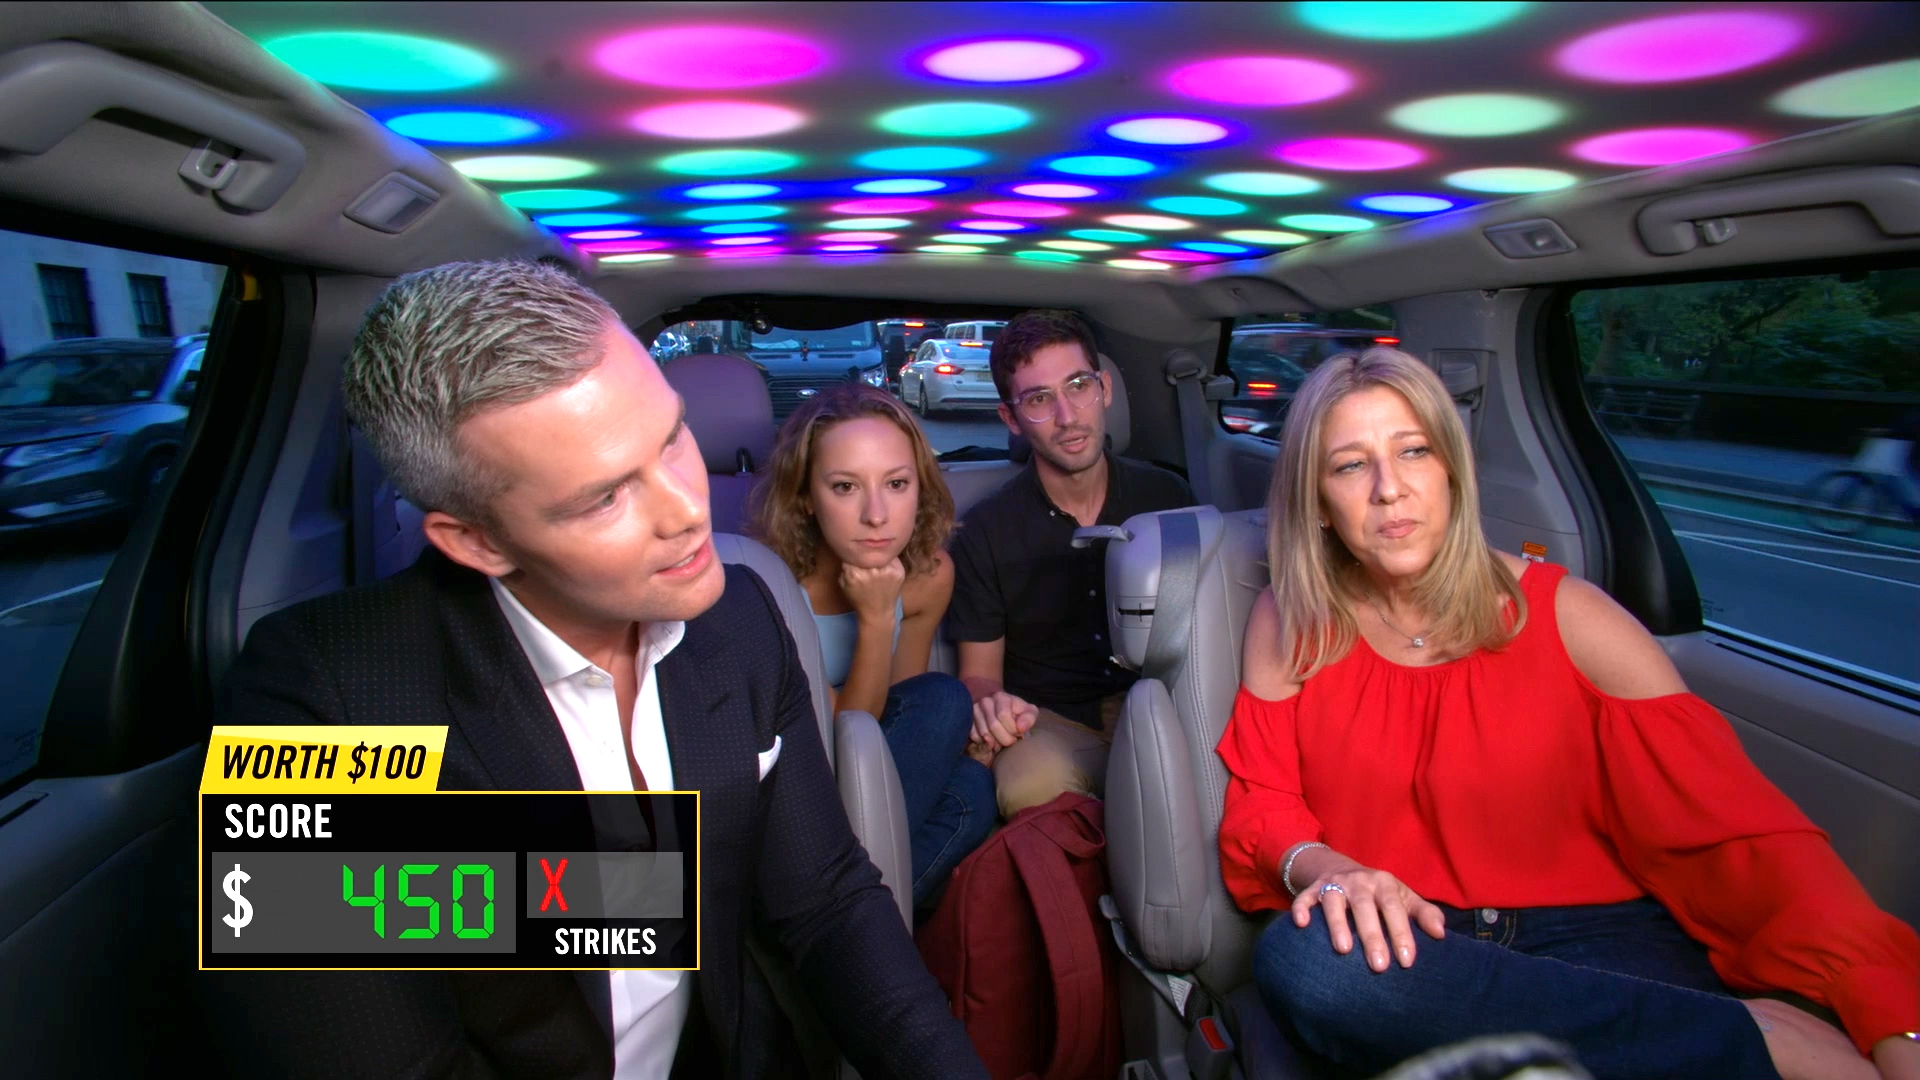 Ryan Serhant Rides In the Cash Cab